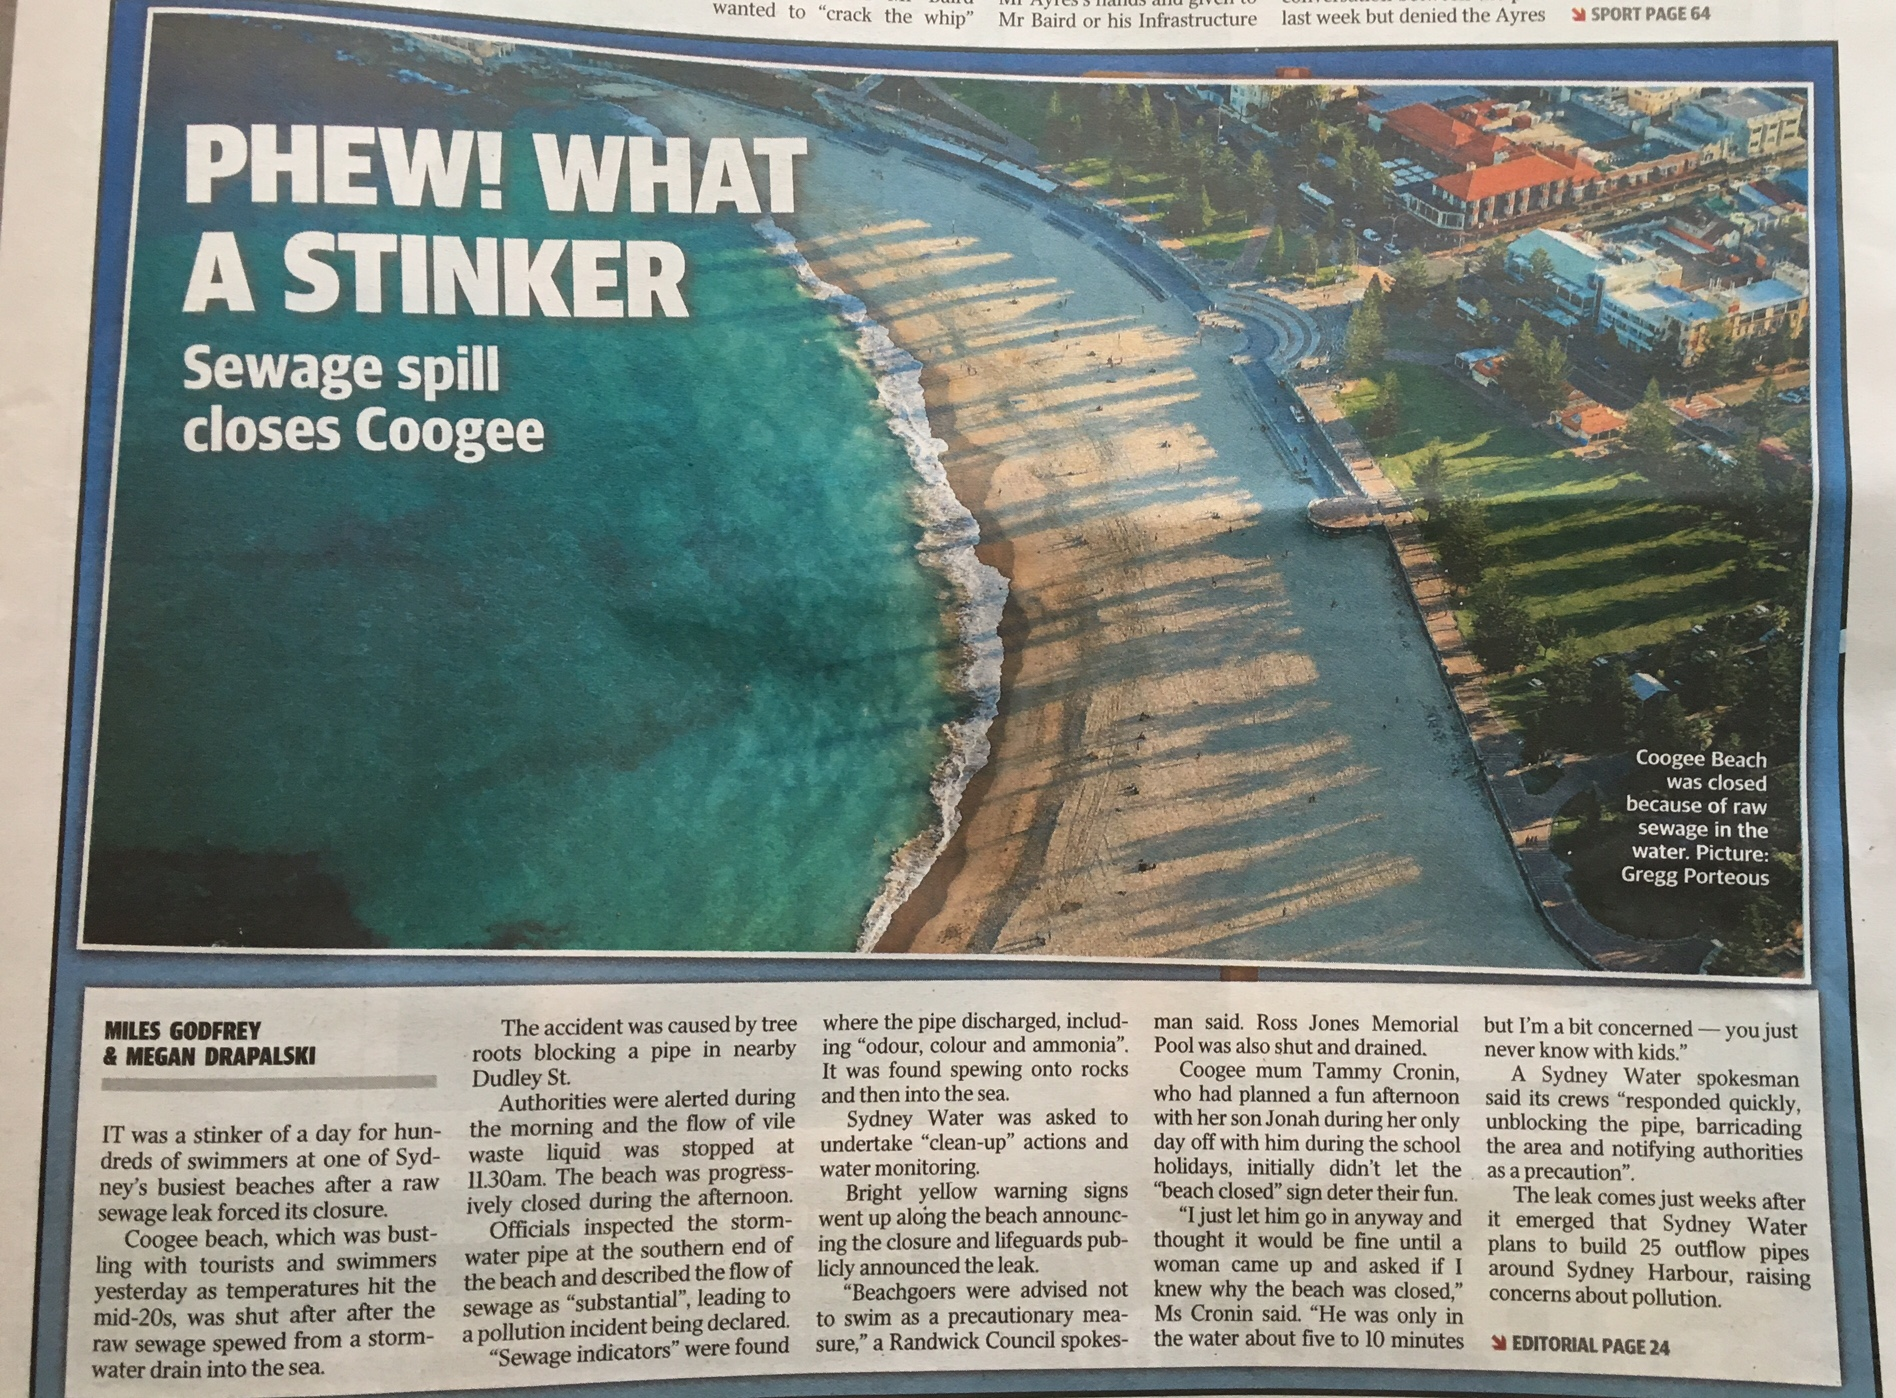 2016 04 14 Cooge sewer spill Daily Telegraph article